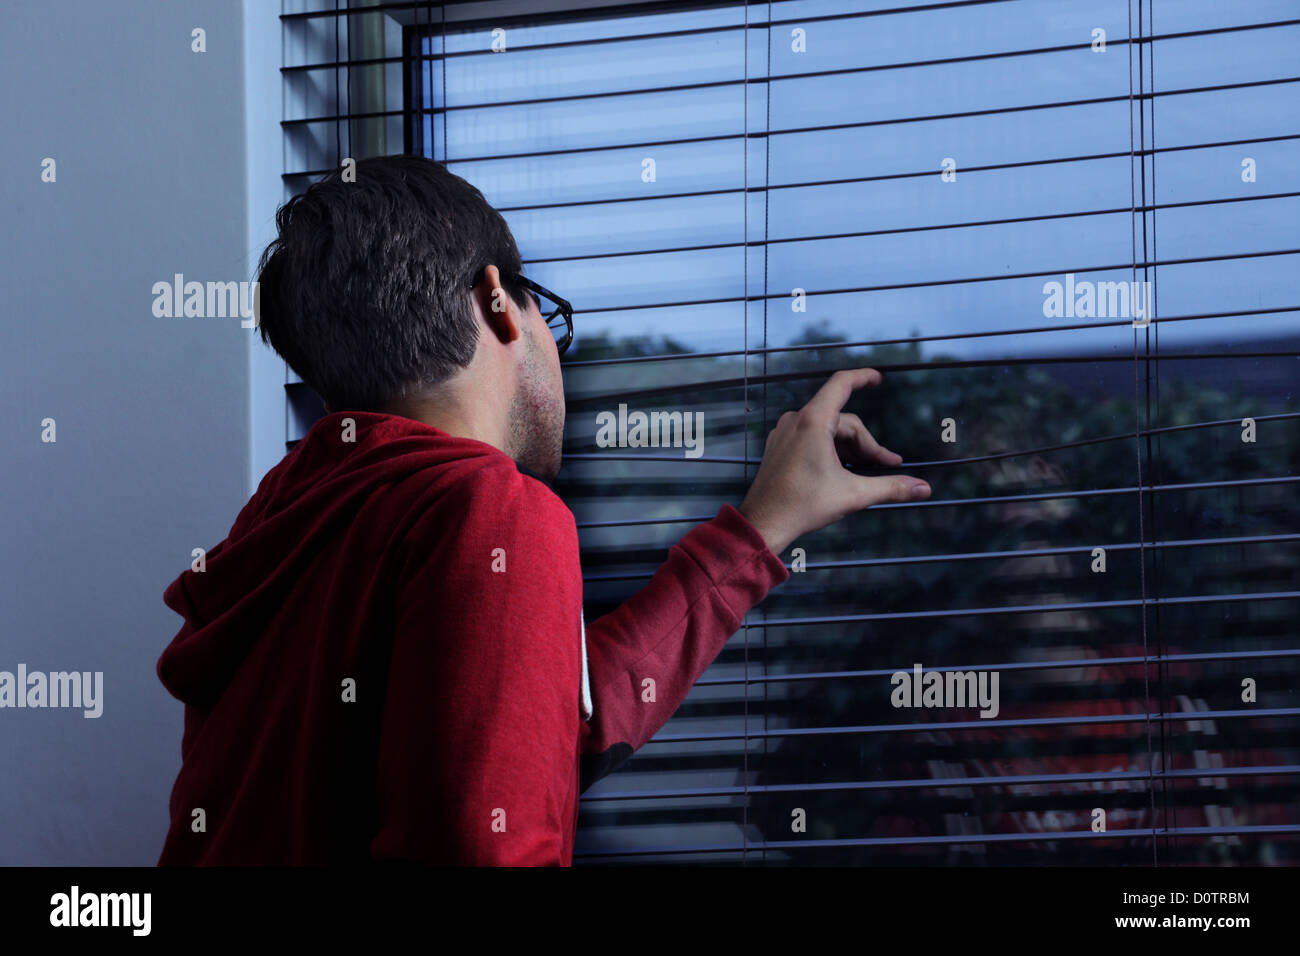 Young male wearing glasses looking out through a window blind at night. Back view. - Stock Image